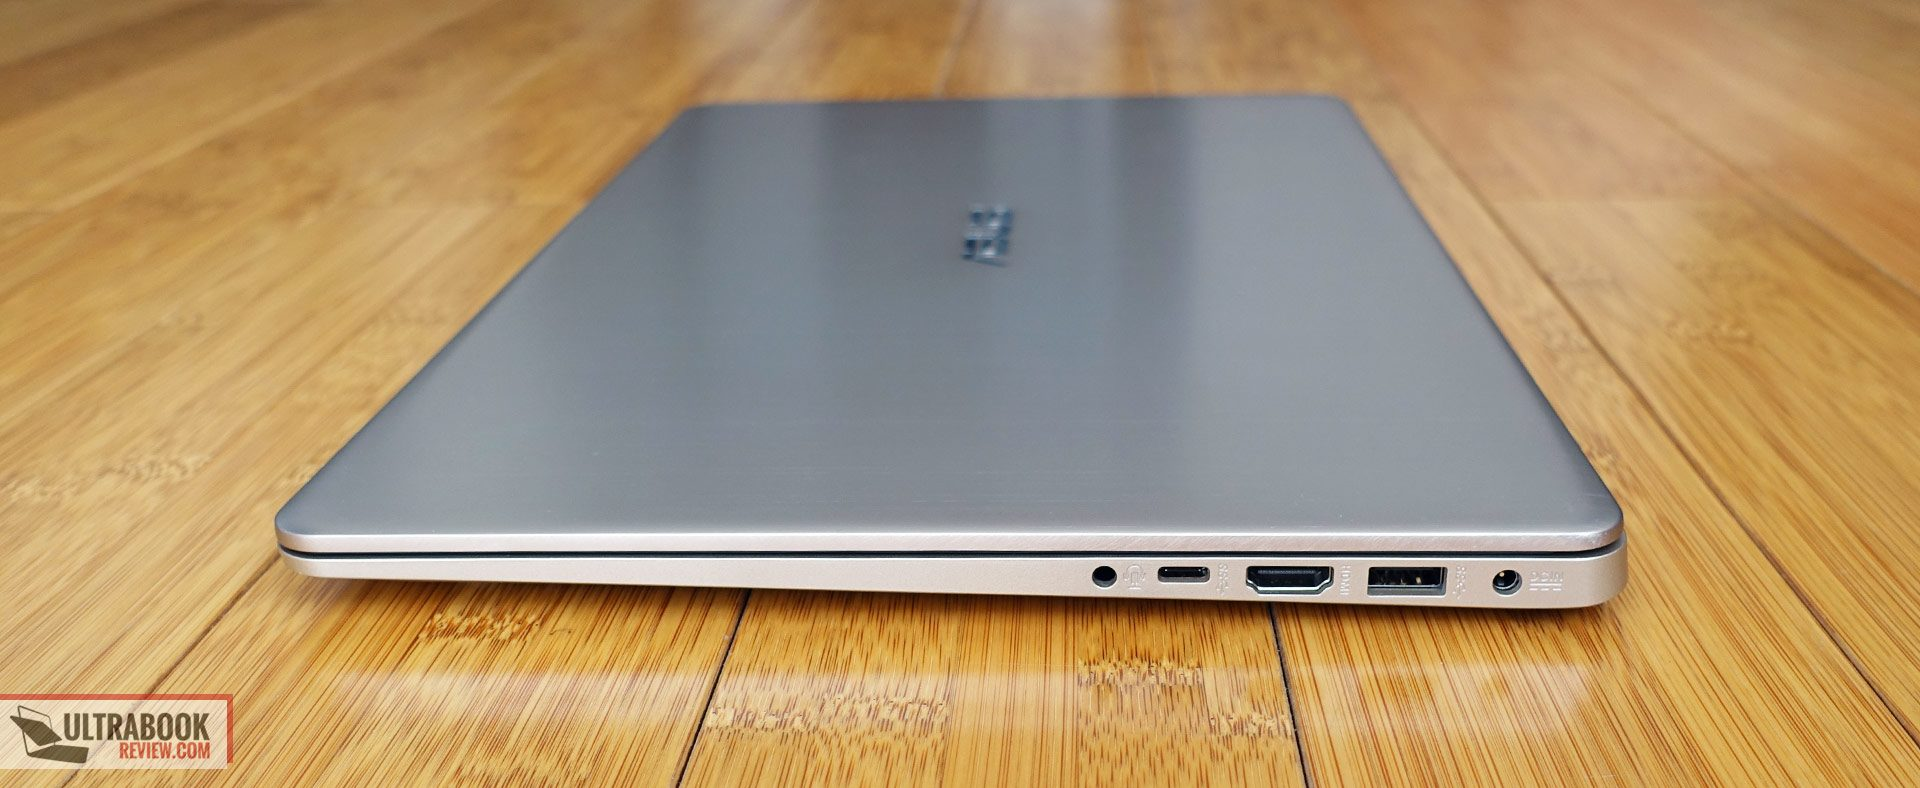 Asus VivoBook S15 S510 / F510 review - thin and light full-size